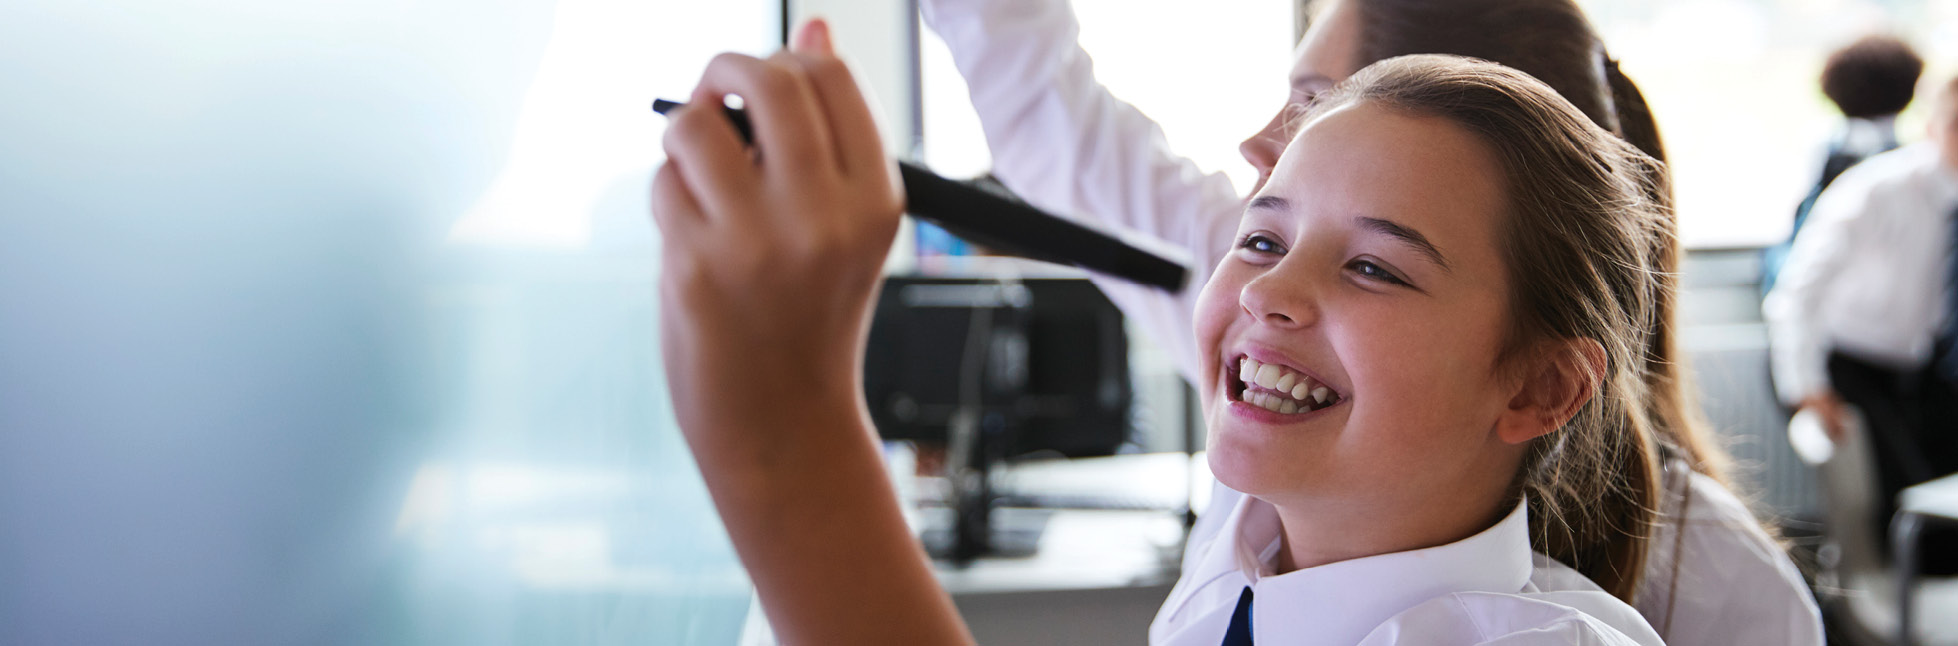 4 cleaning and hygiene tips for schools